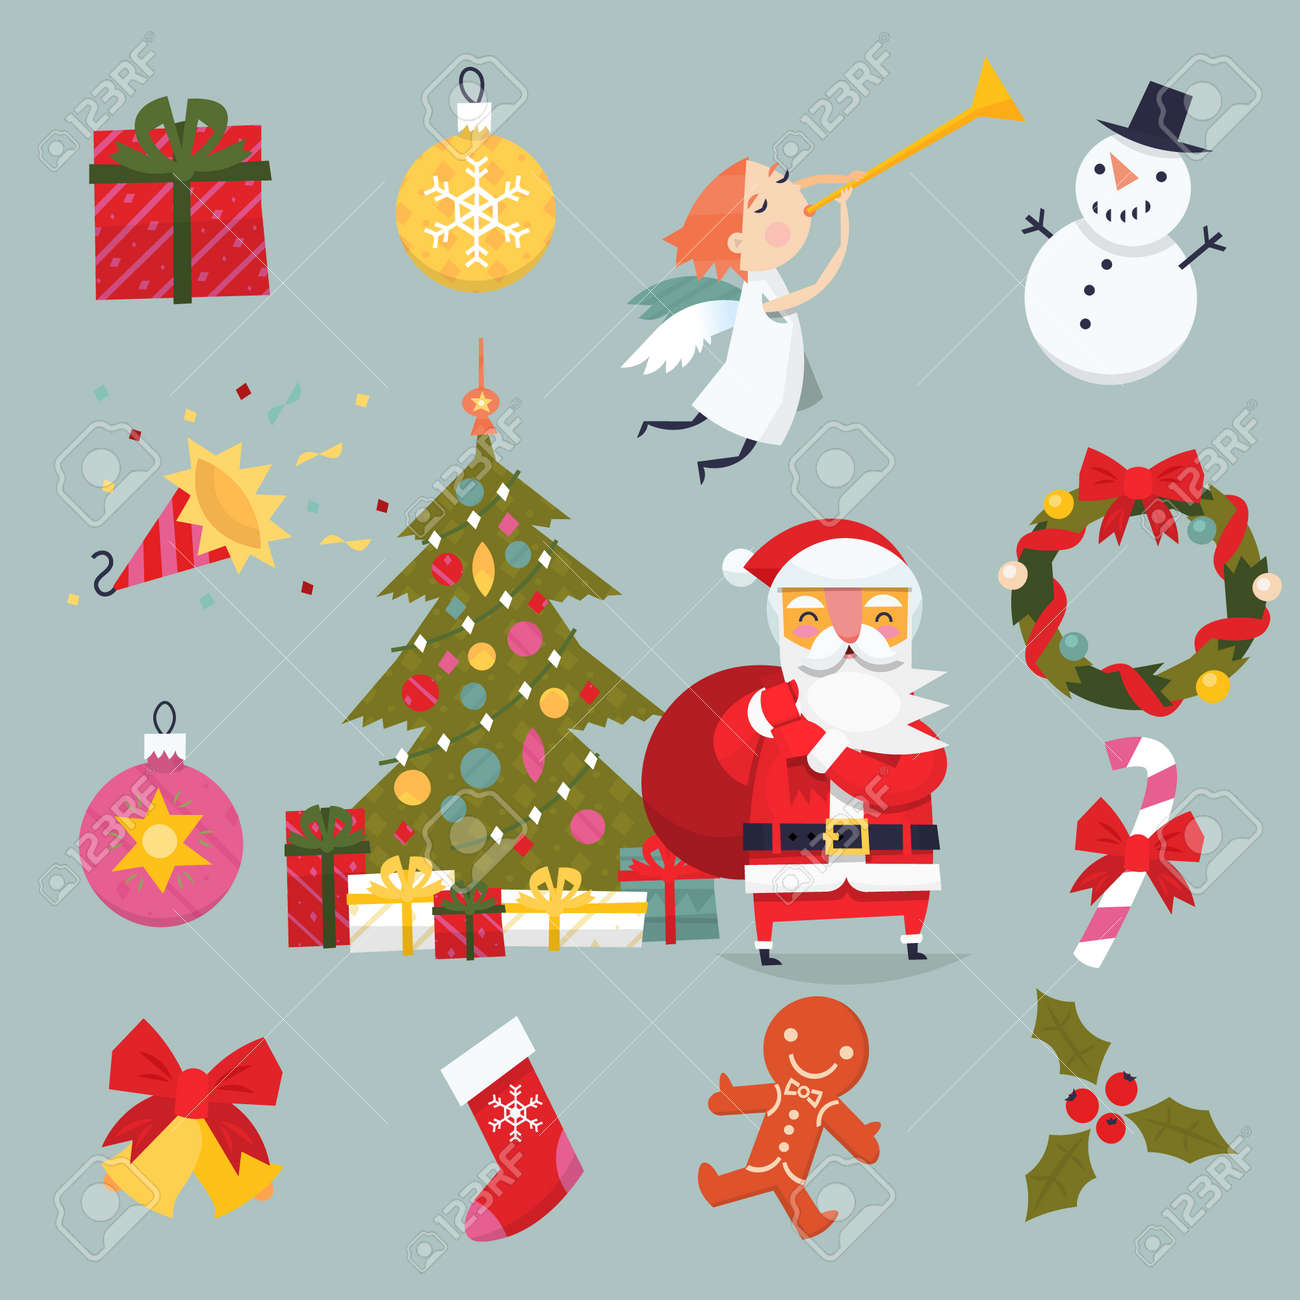 Set Of Elements And Illustrations For Creating Christmas Cards